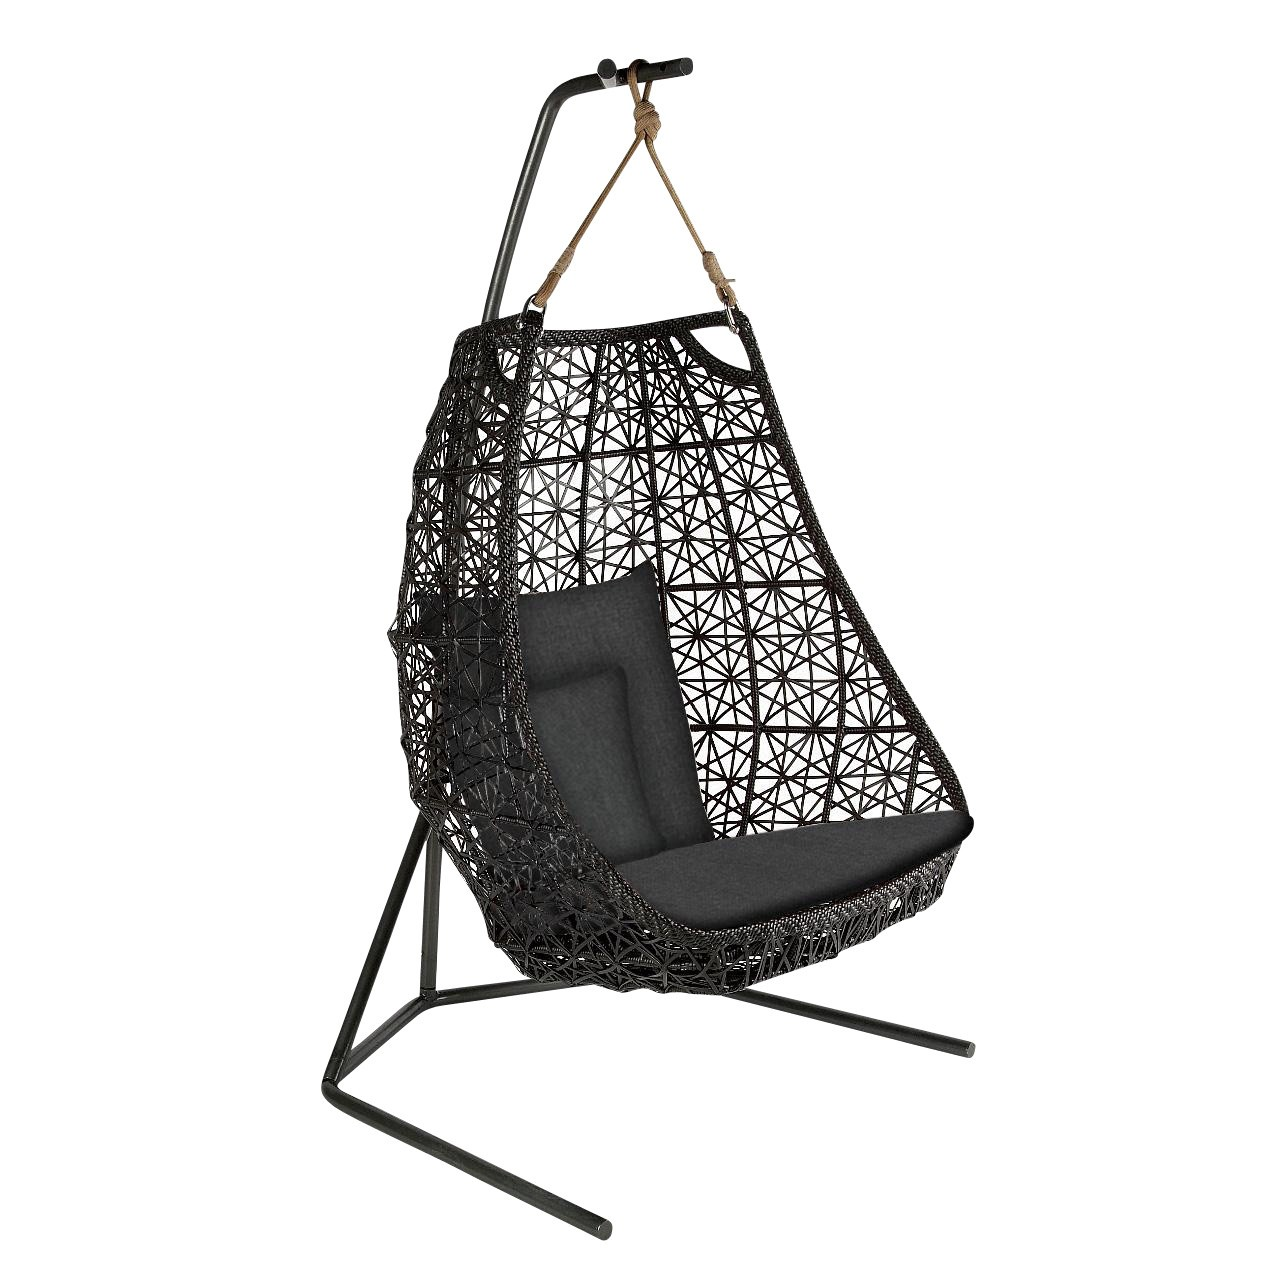 Kettal Maia Egg Swing Hanging Chair Ambientedirect